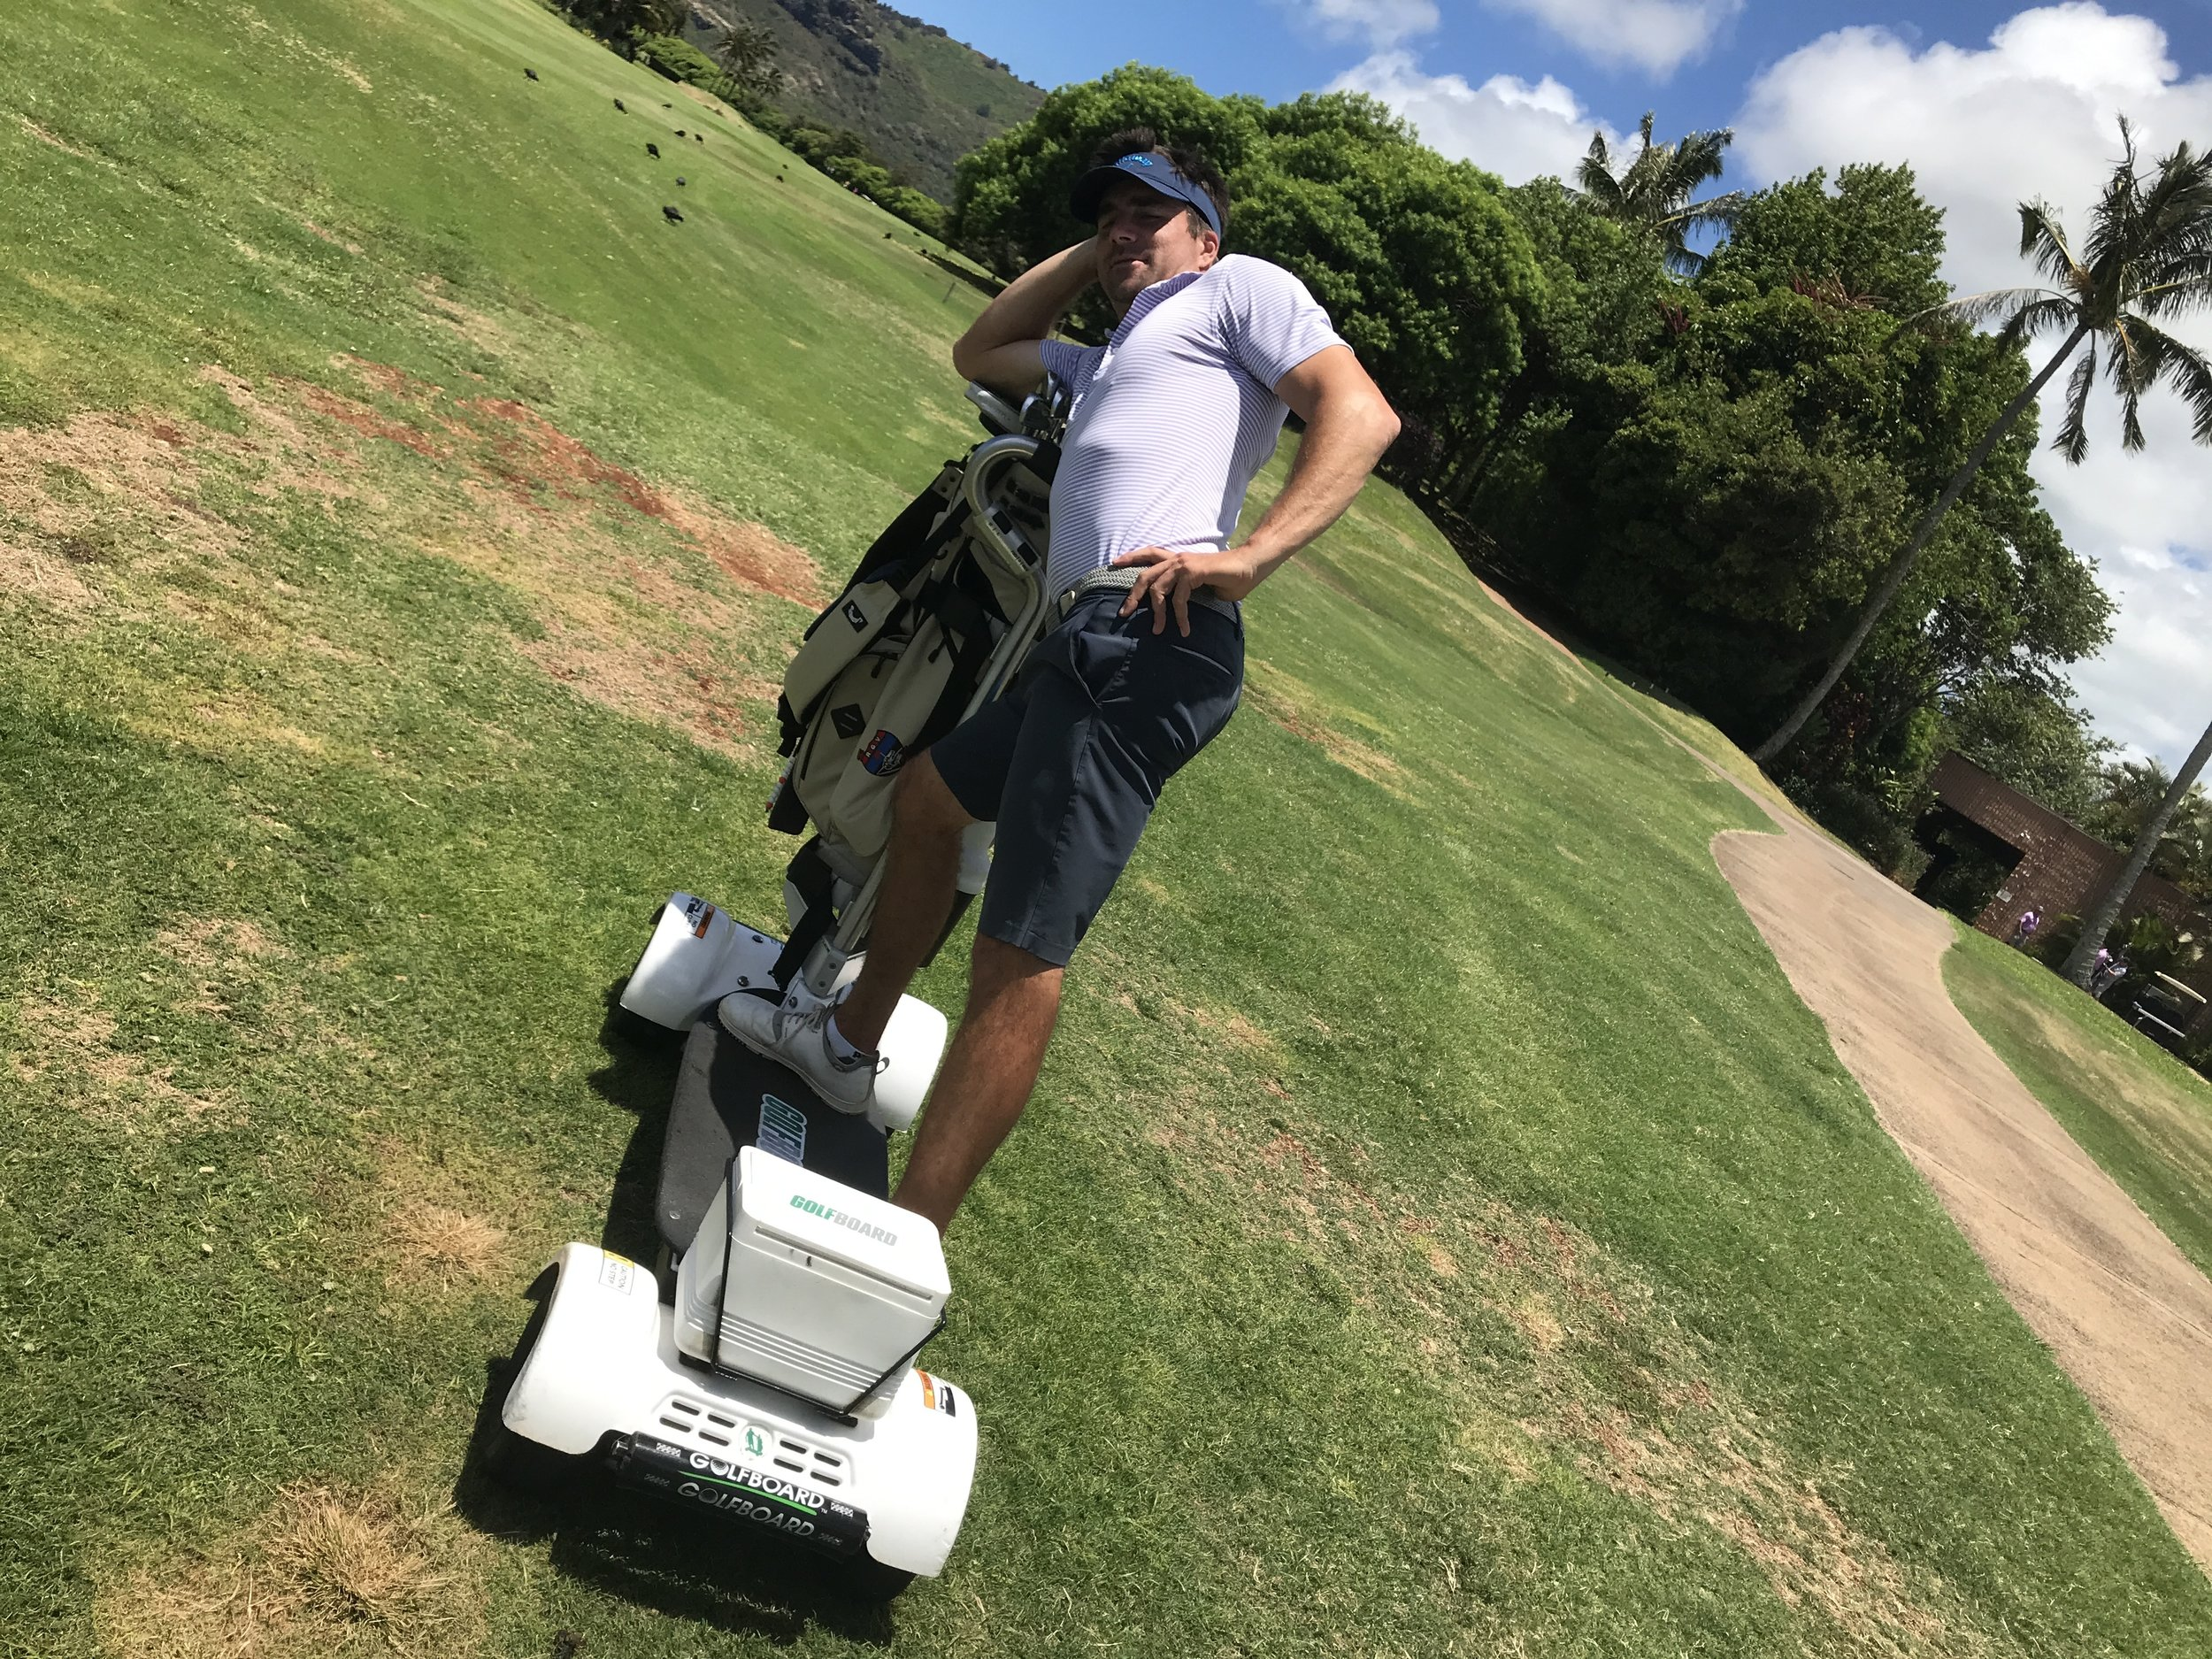 The Ocean Course has  GolfBoards  available for rent. When at Hokuala, be sure to surf The Ocean Course.